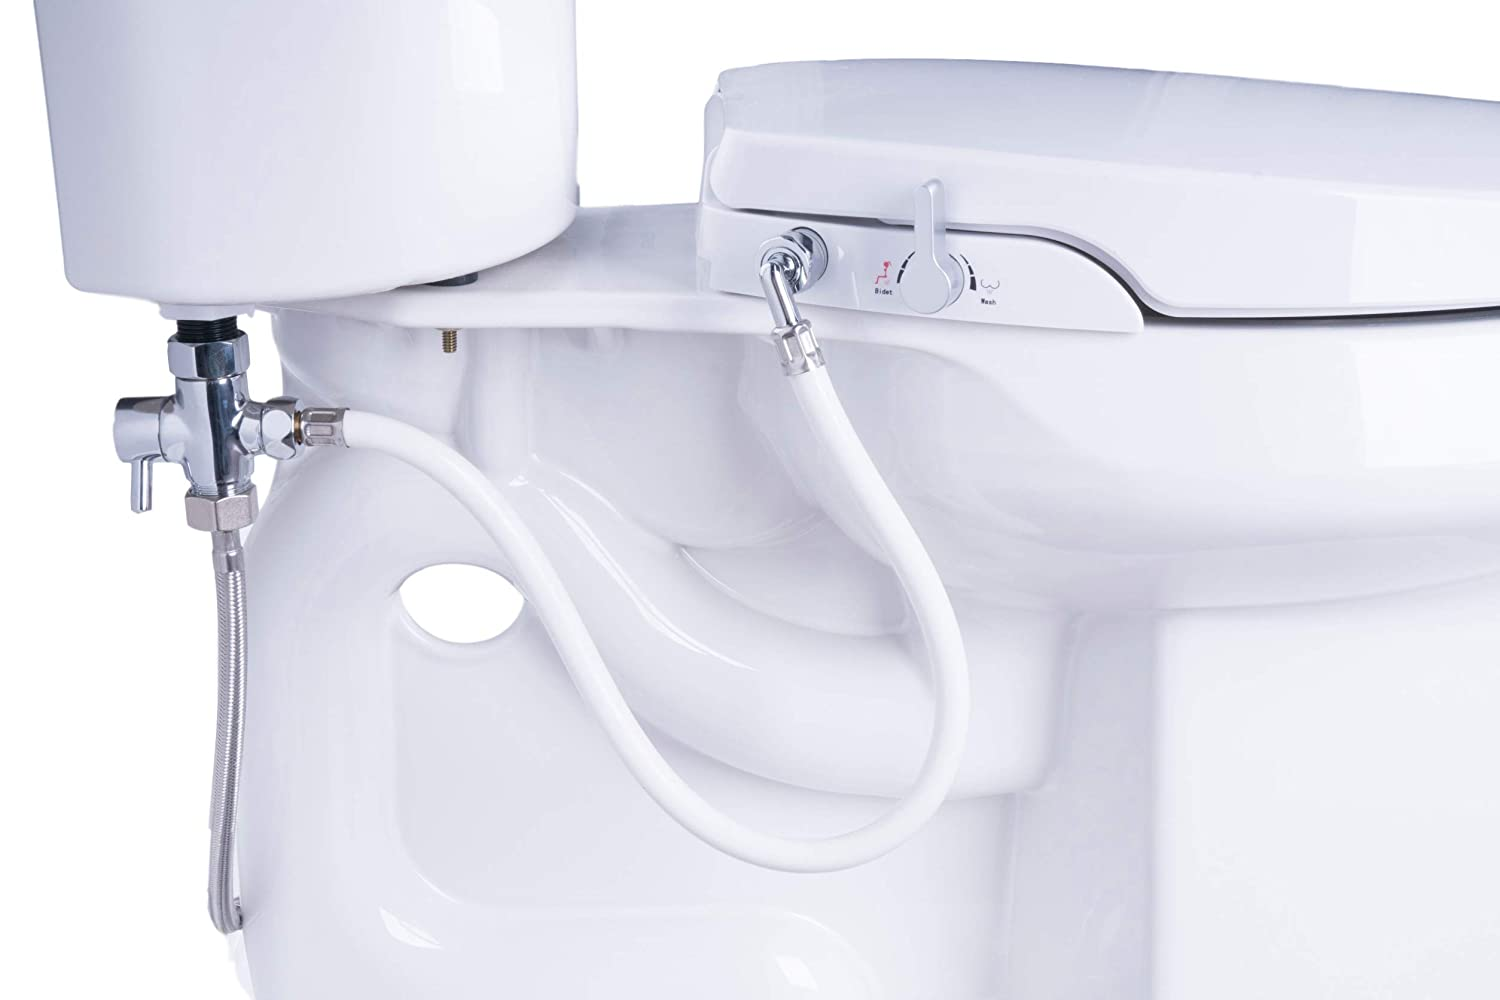 Excellent Geniebidet Round Seat Self Cleaning Dual Nozzles Rear Feminine Cleaning No Wiring Required Simple 20 45 Minute Installation Or Less Hybrid T Pdpeps Interior Chair Design Pdpepsorg